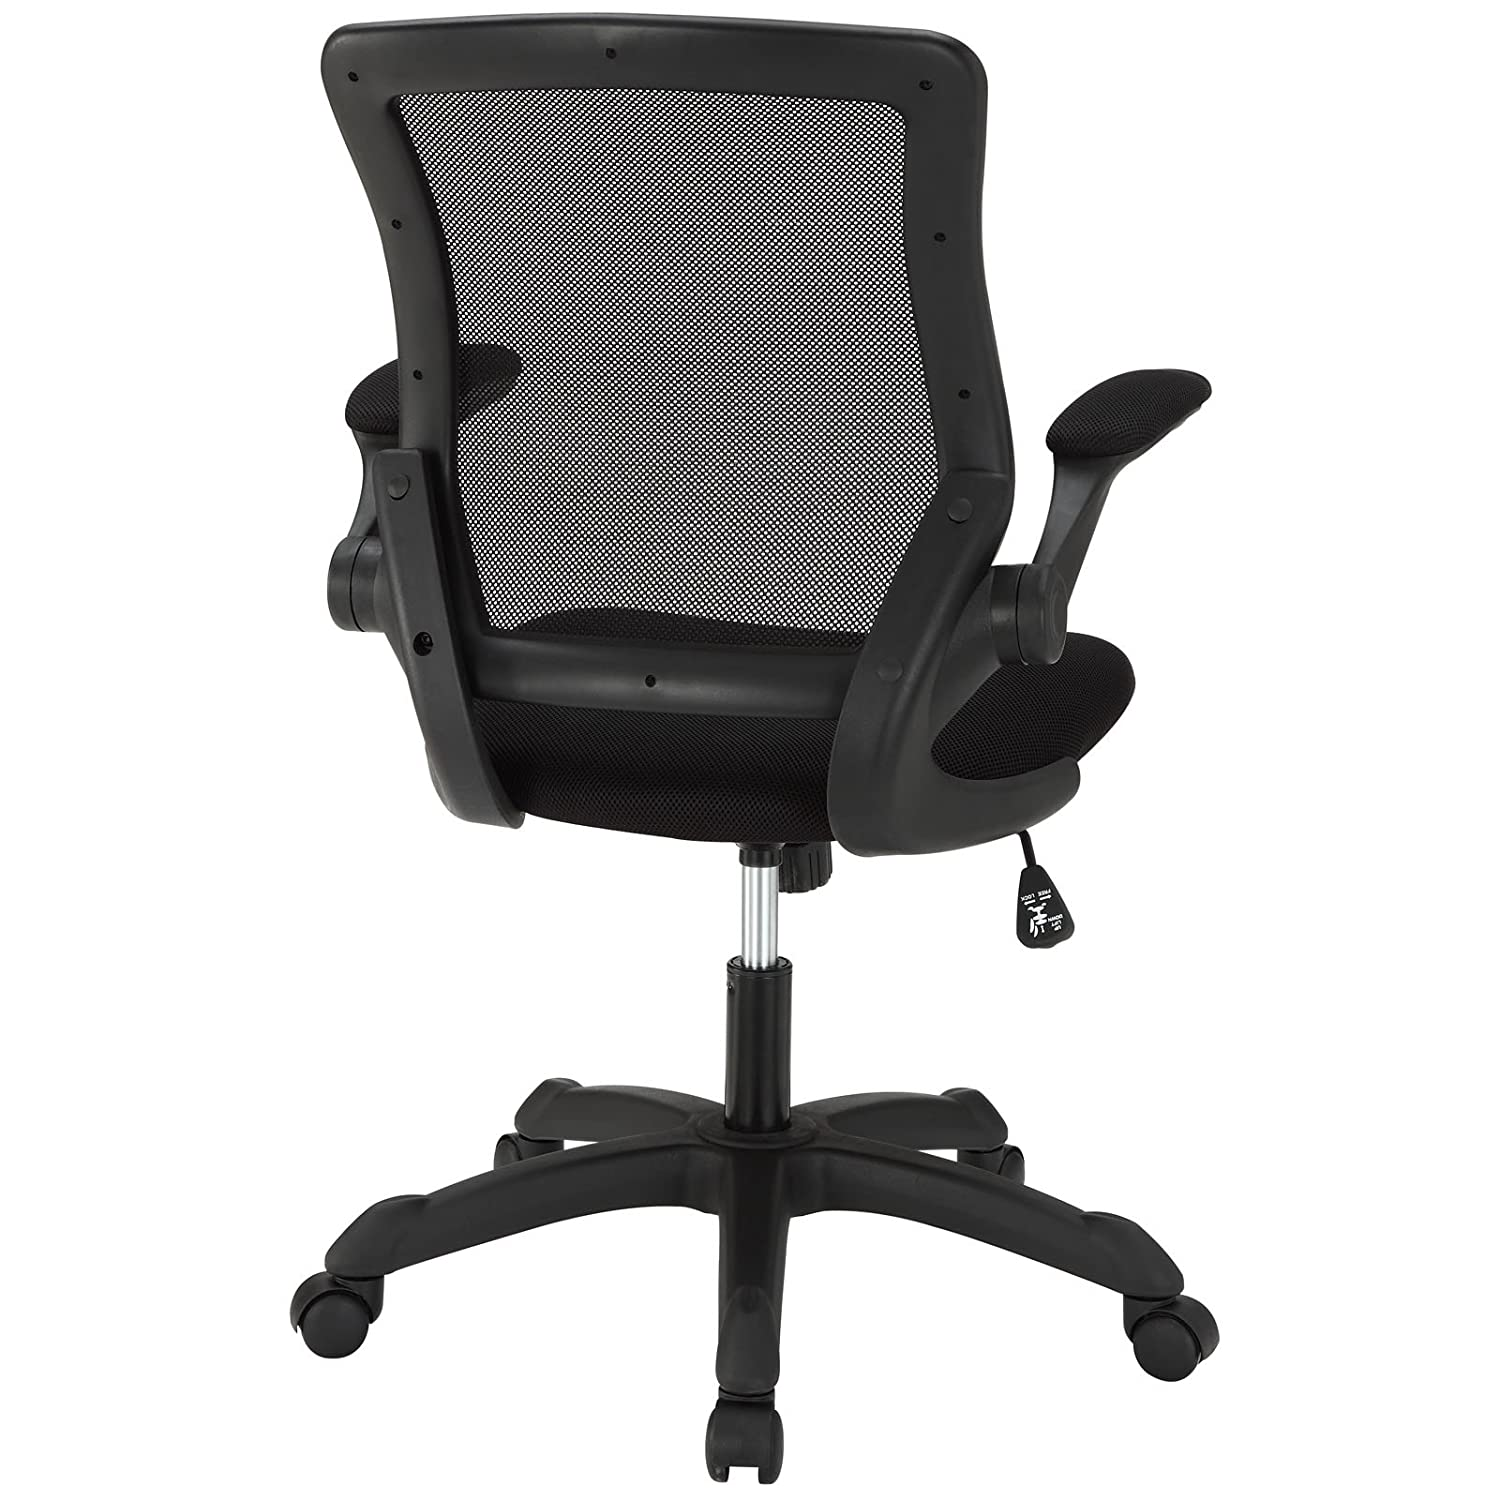 Modway Veer Mesh Office Chair in Black